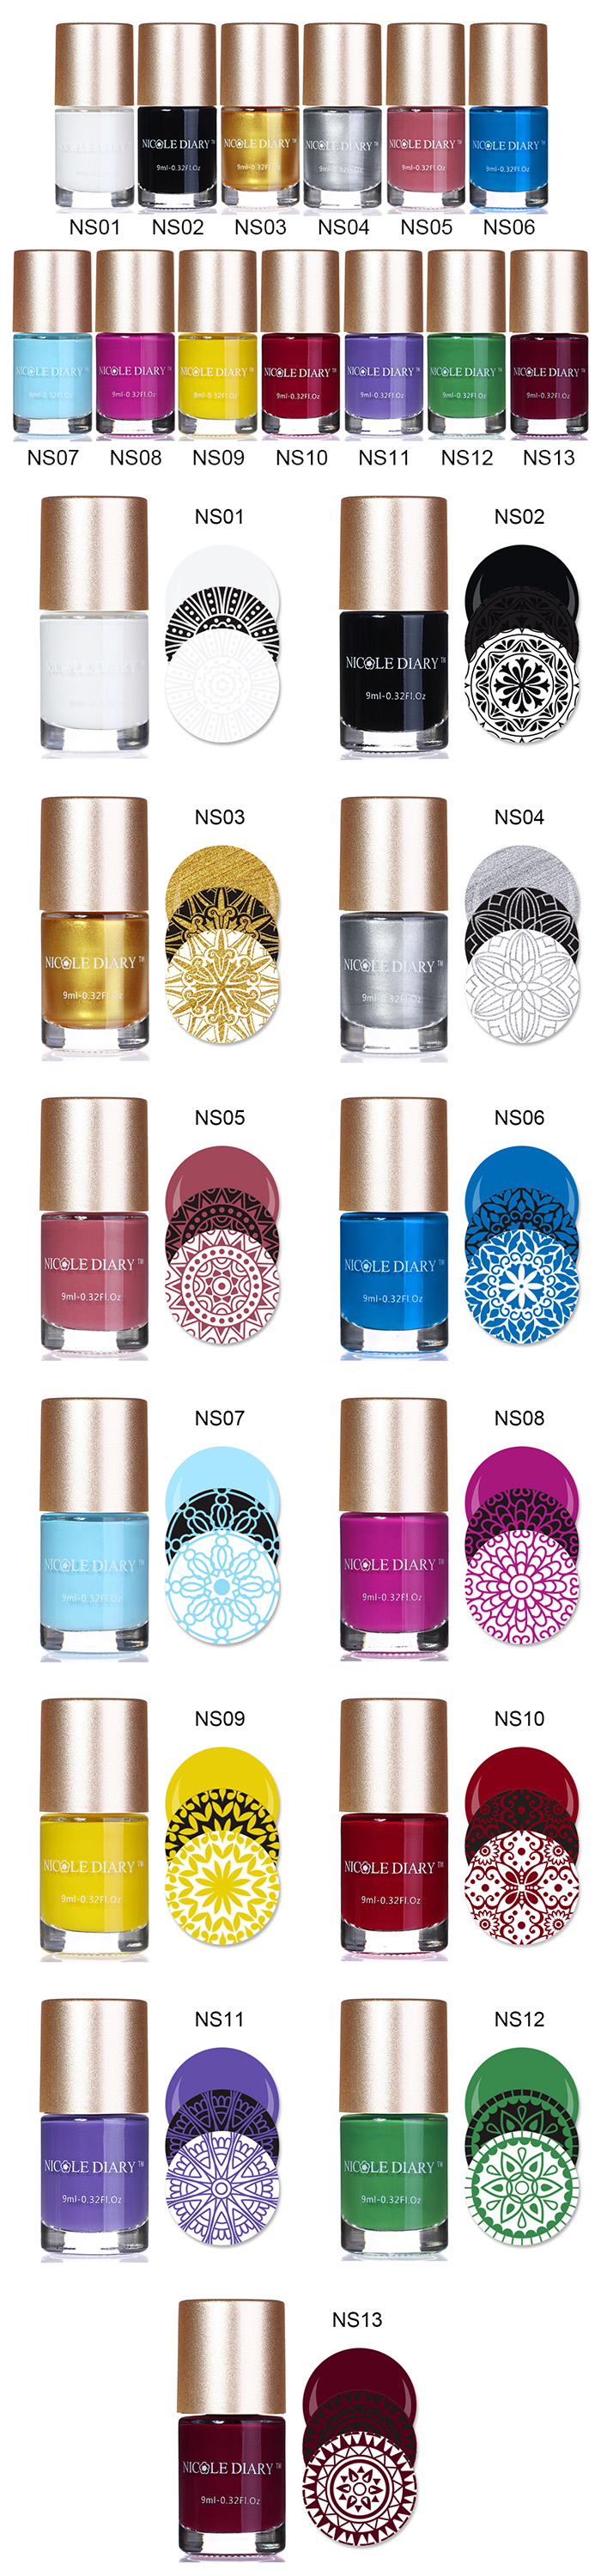 NICOLE DIARY 9ml Sweet Color Nail Art Stamping Polish Stamping Nail Lacquer Nail Art Varnish Polish 13 Colors